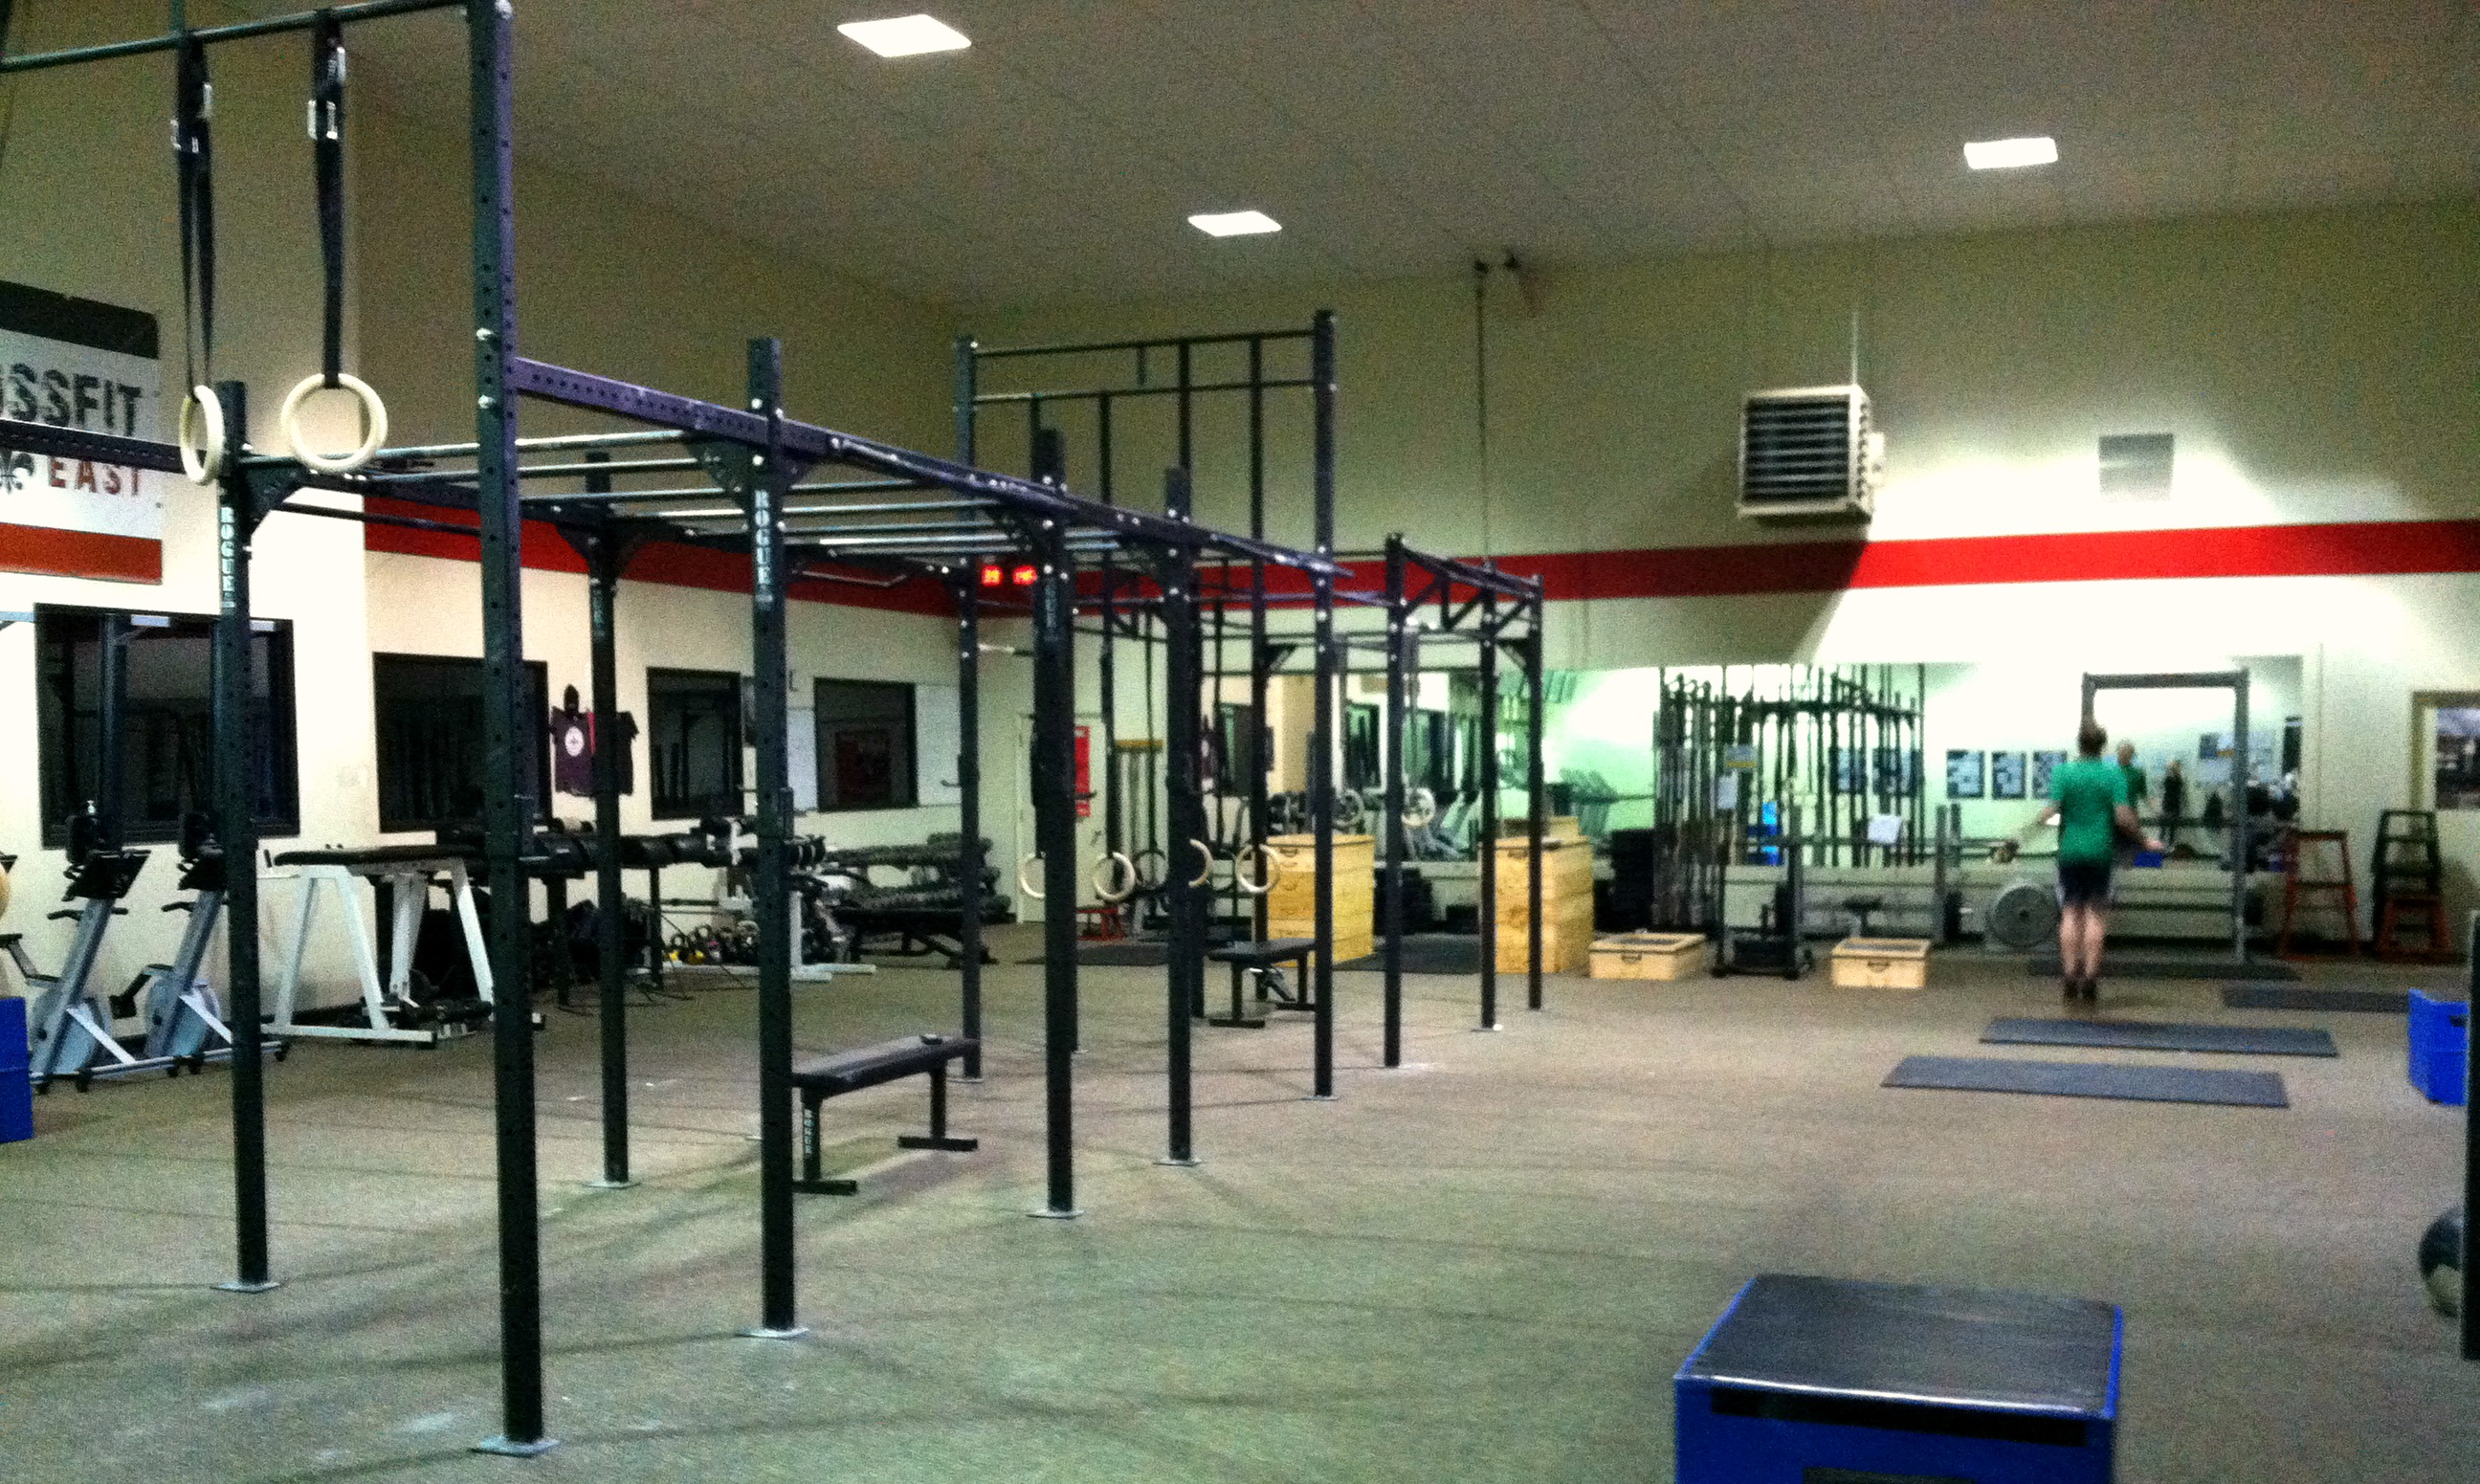 crossfit garage gym ideas - Crossfit